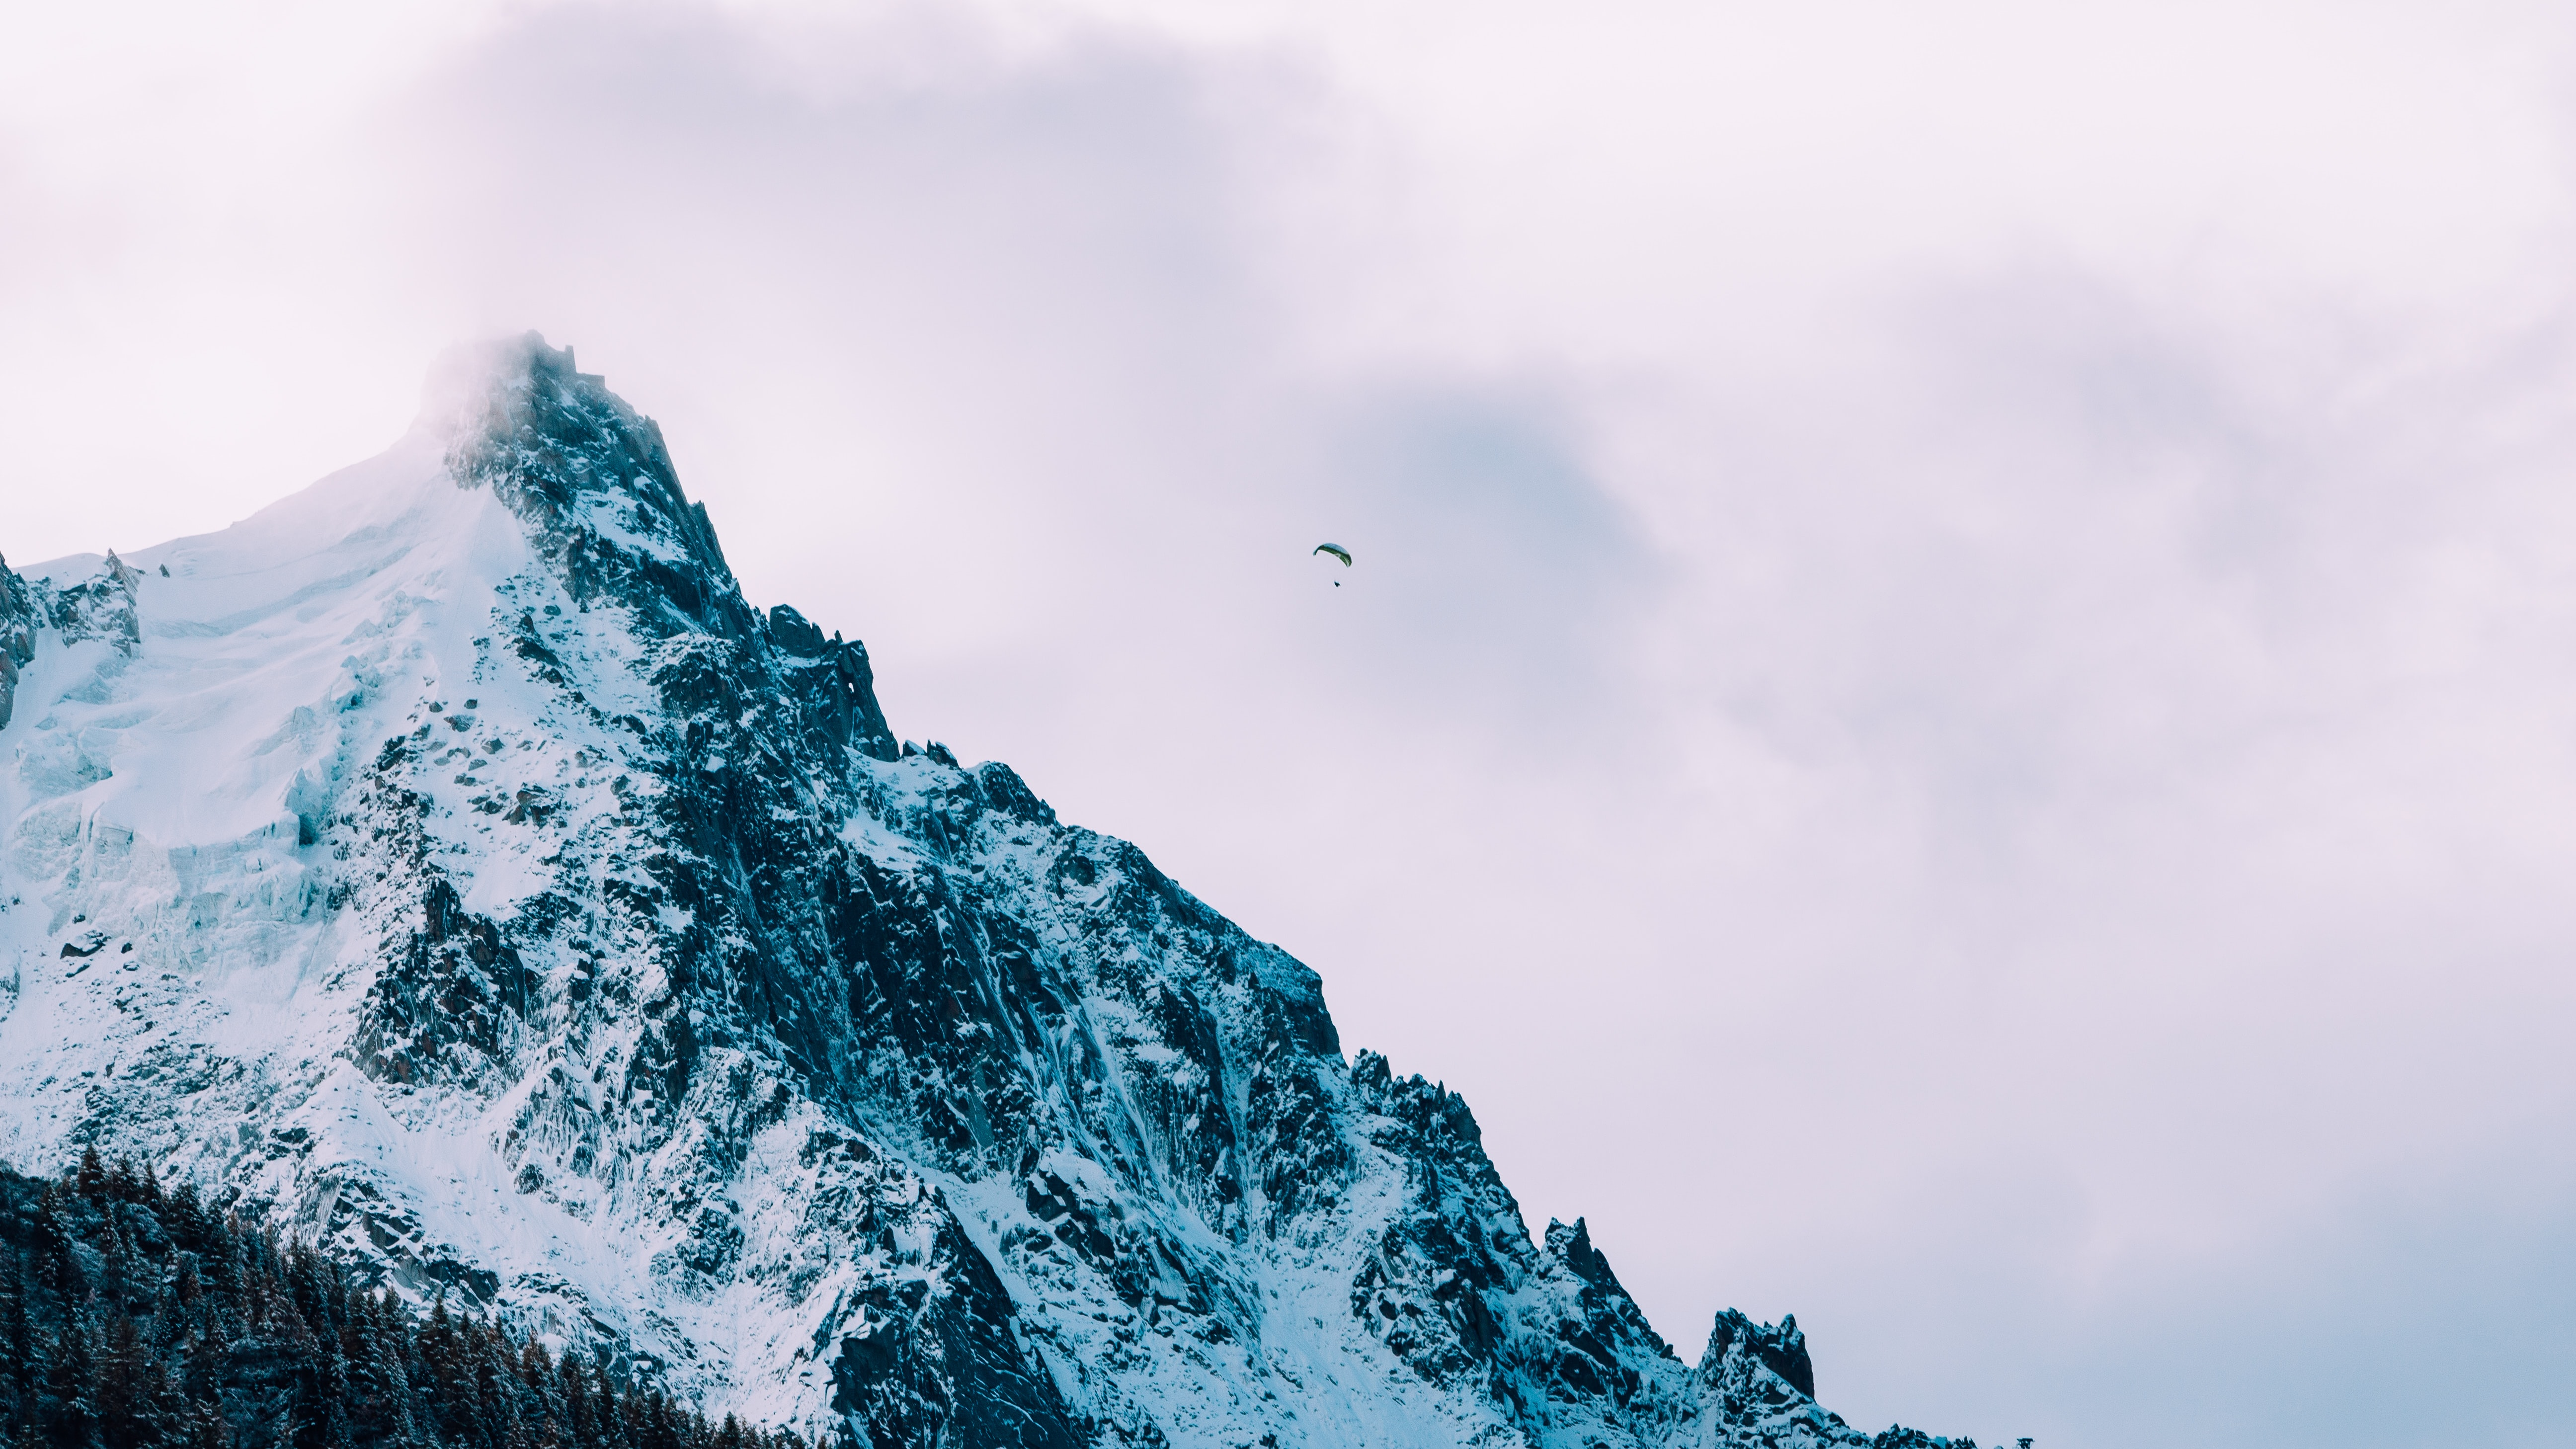 A paraglider in the sky over a snow-covered mountain